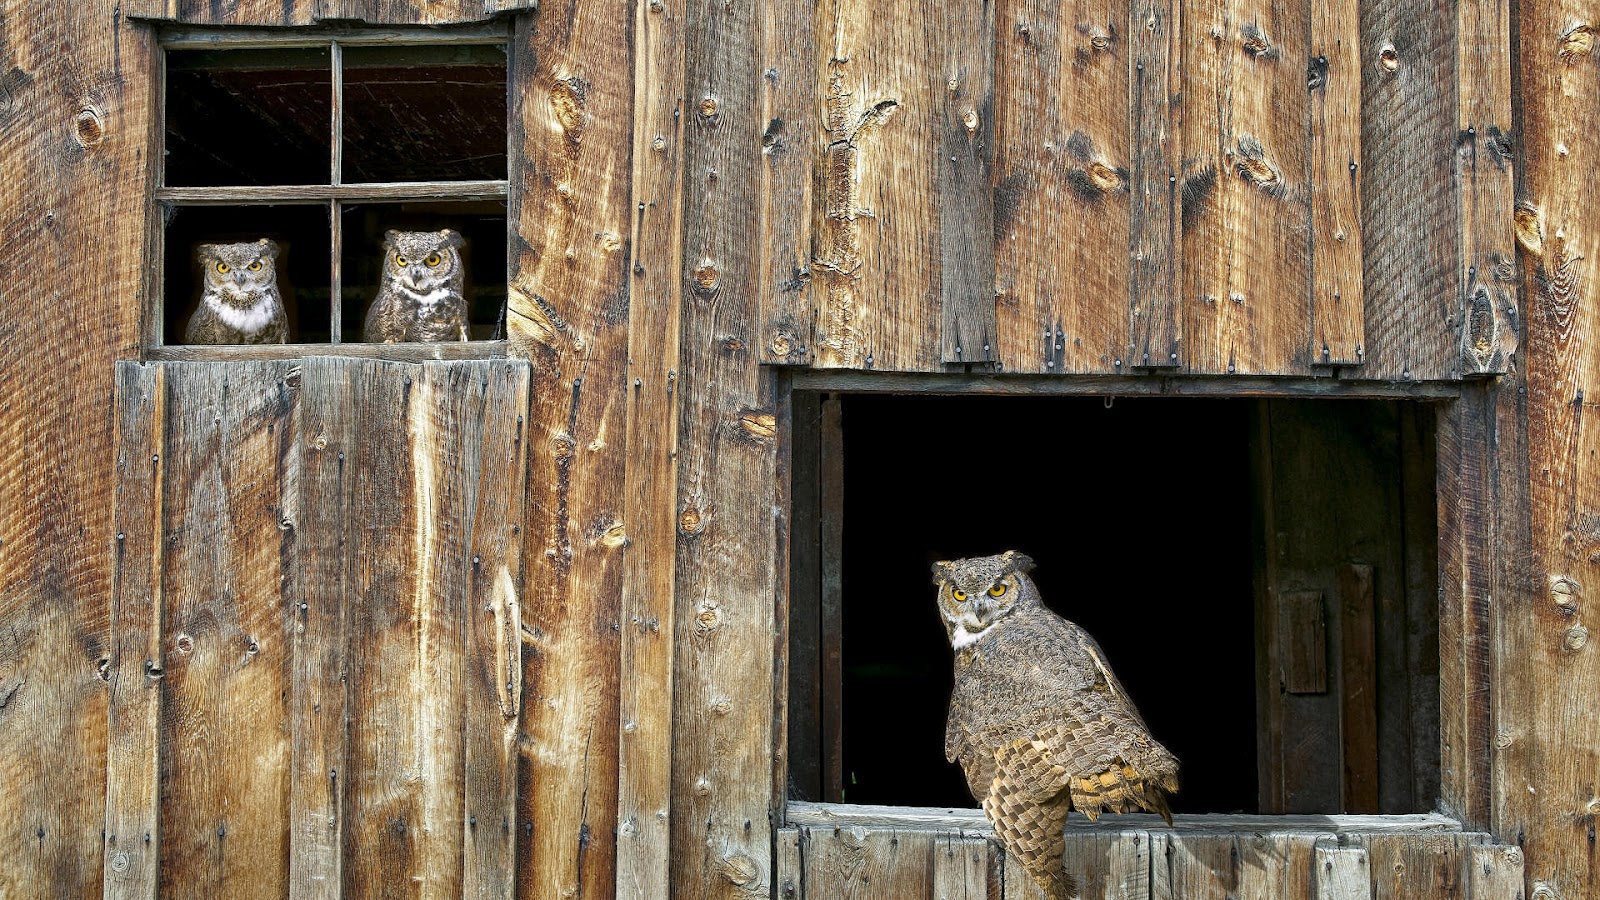 http://3.bp.blogspot.com/-rYX6aPyZono/UCJOA9rK7tI/AAAAAAAAAE8/hnvwYP-FQM4/s1600/owls-in-a-wooden-hutch-hd-owl-wallpaper-animal.jpg